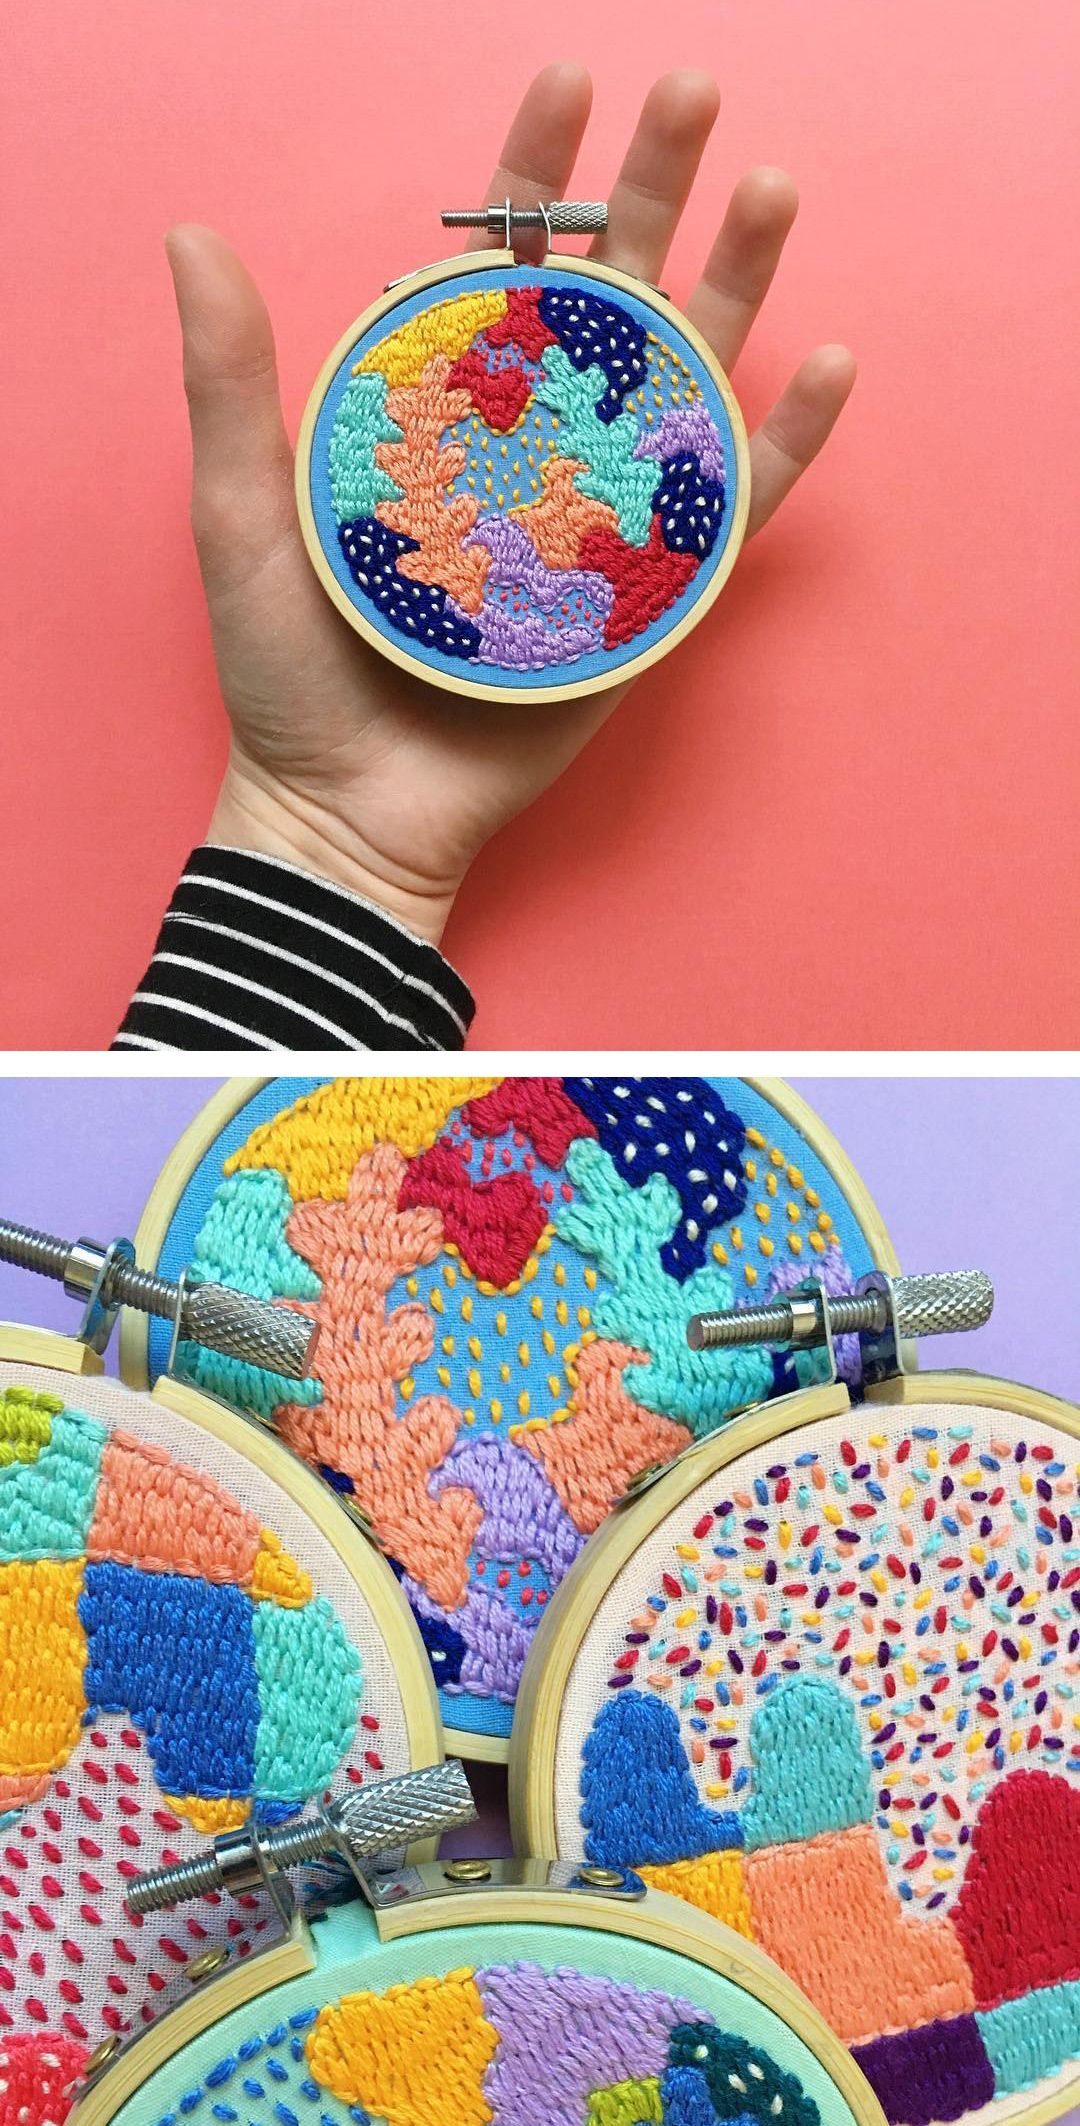 Colorful Contemporary Embroidery By Kelly Ryan - Modern Embroidery -